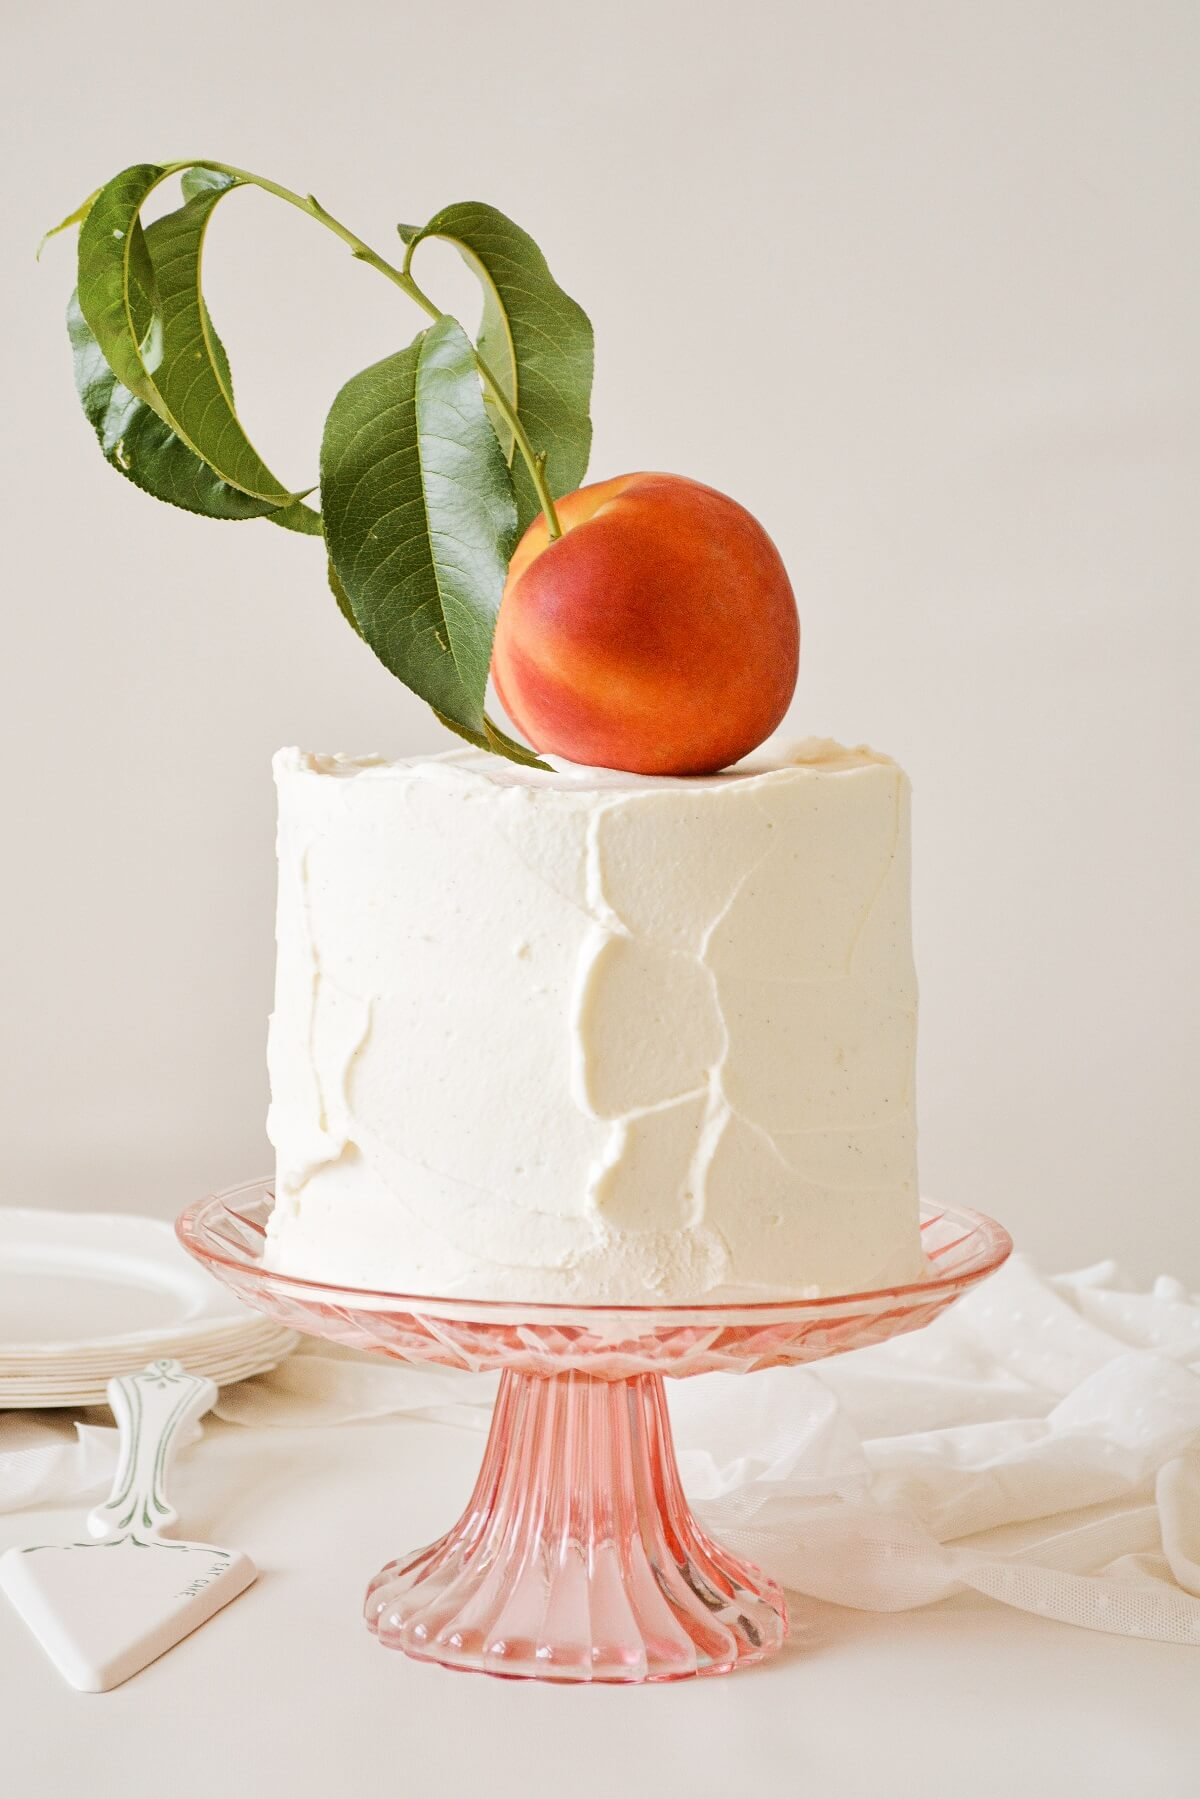 Peaches and cream cake, topped with a whole peach.